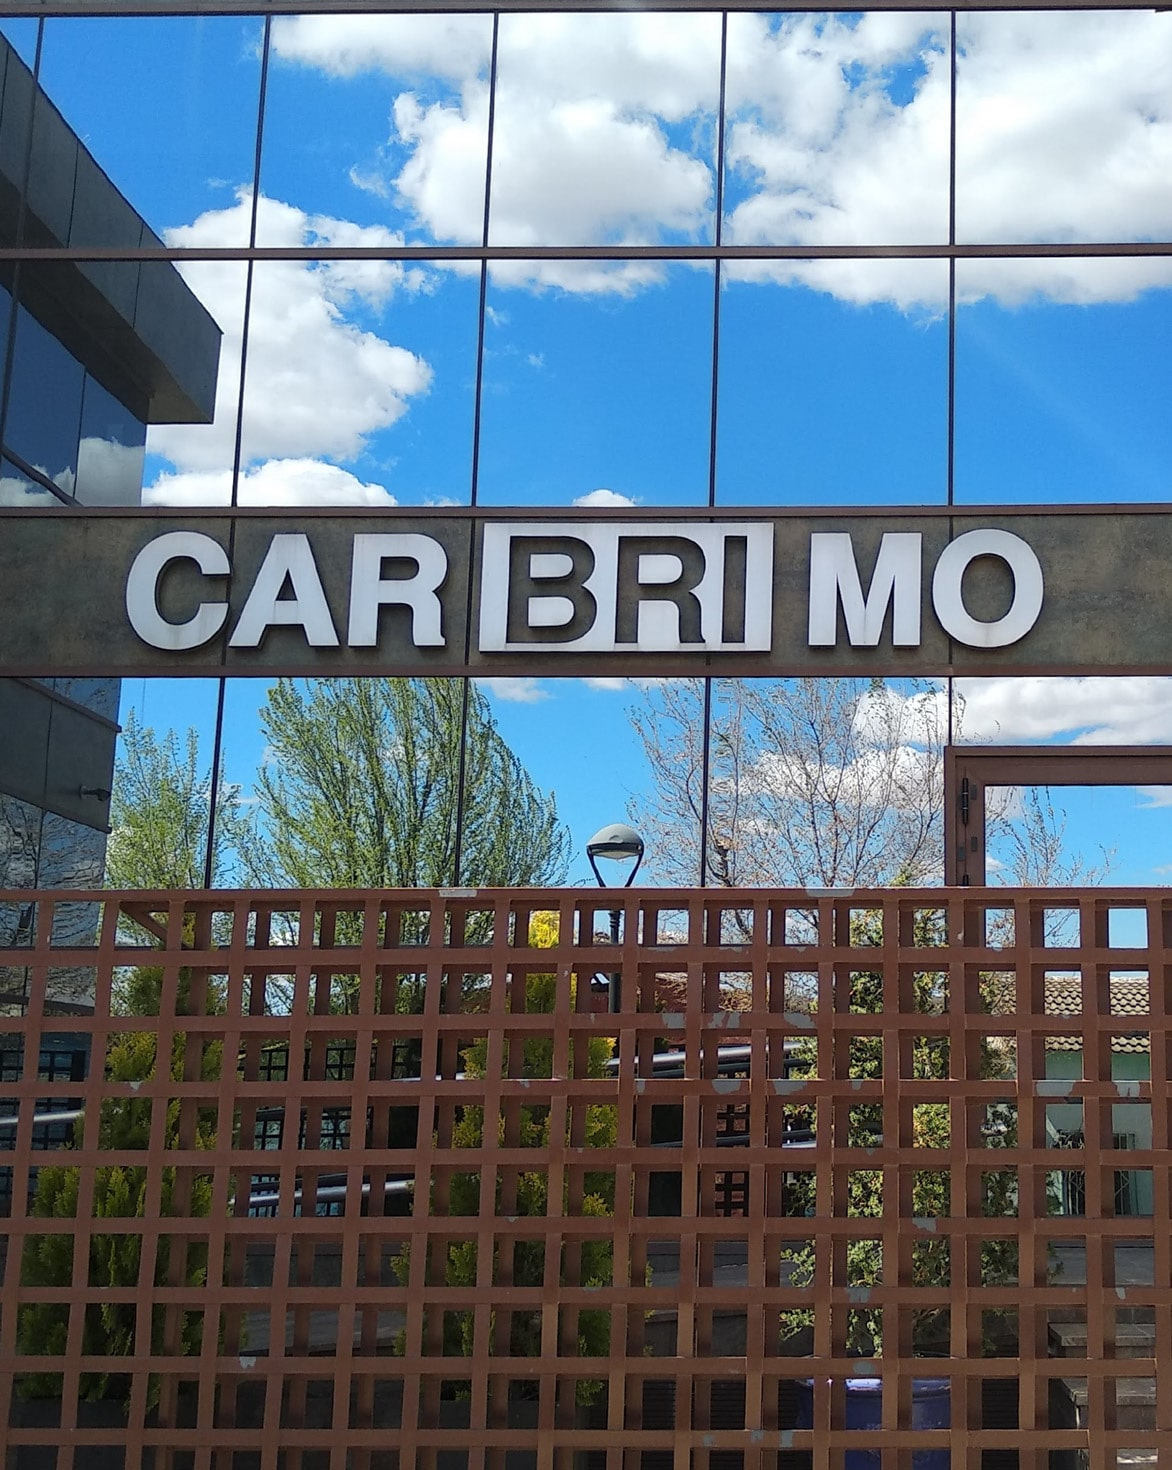 Equipo Carbrimo